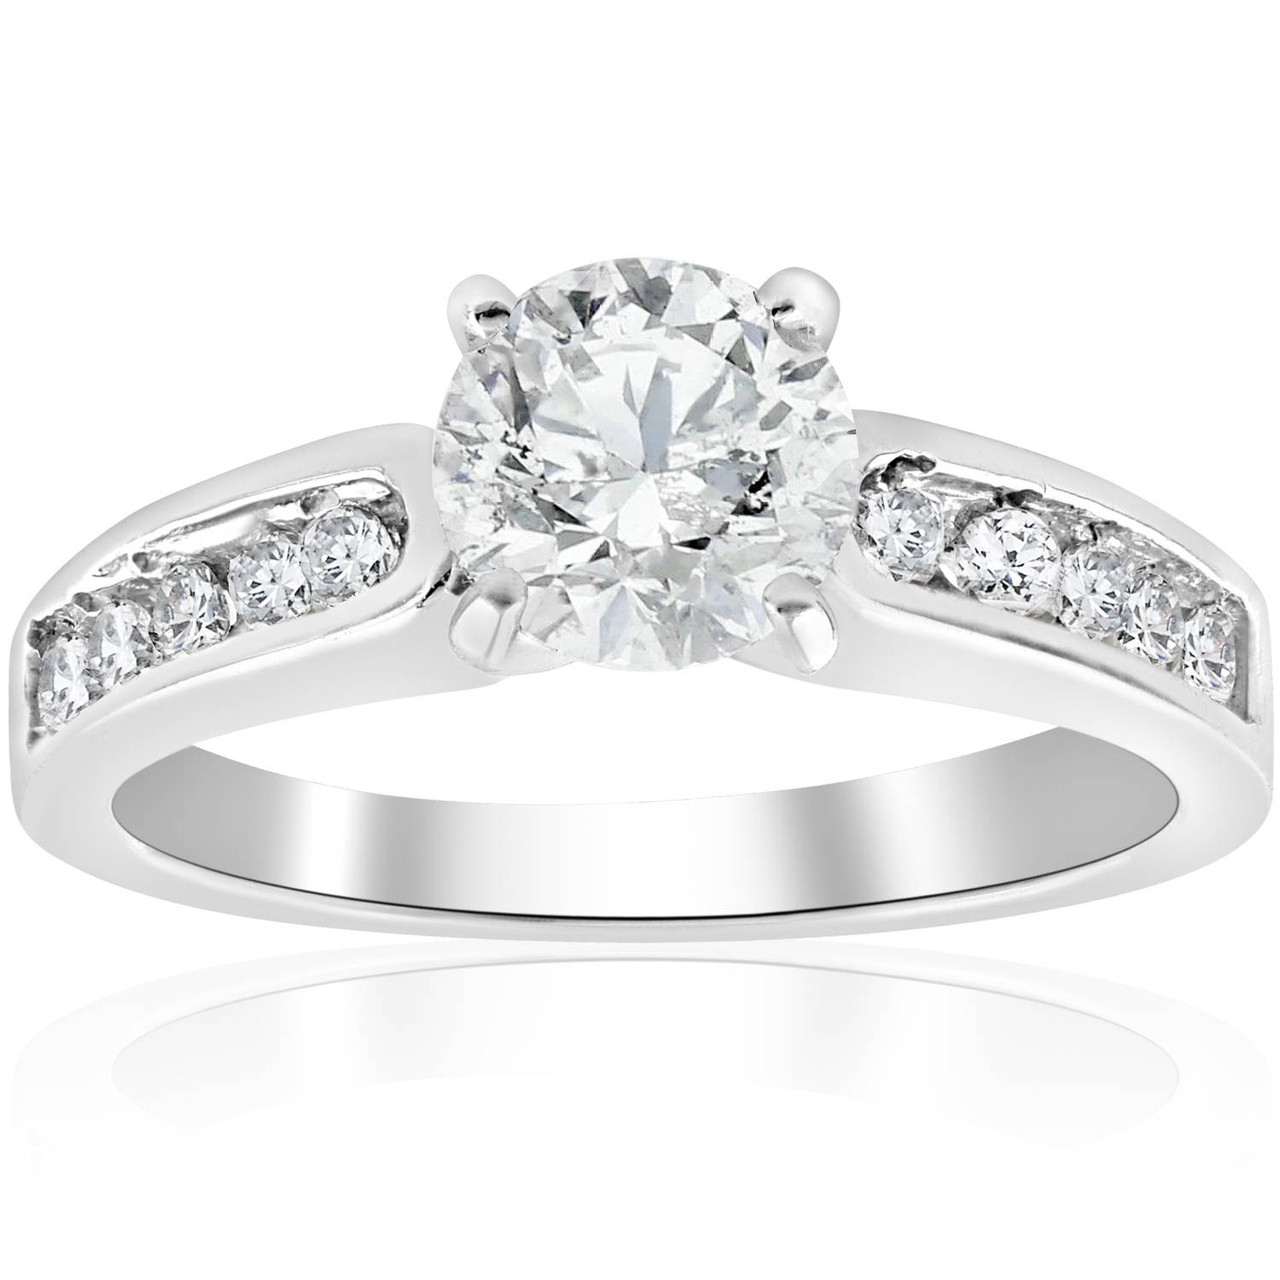 1 Ct Diamond Engagement Ring 14k White Gold Channel Set